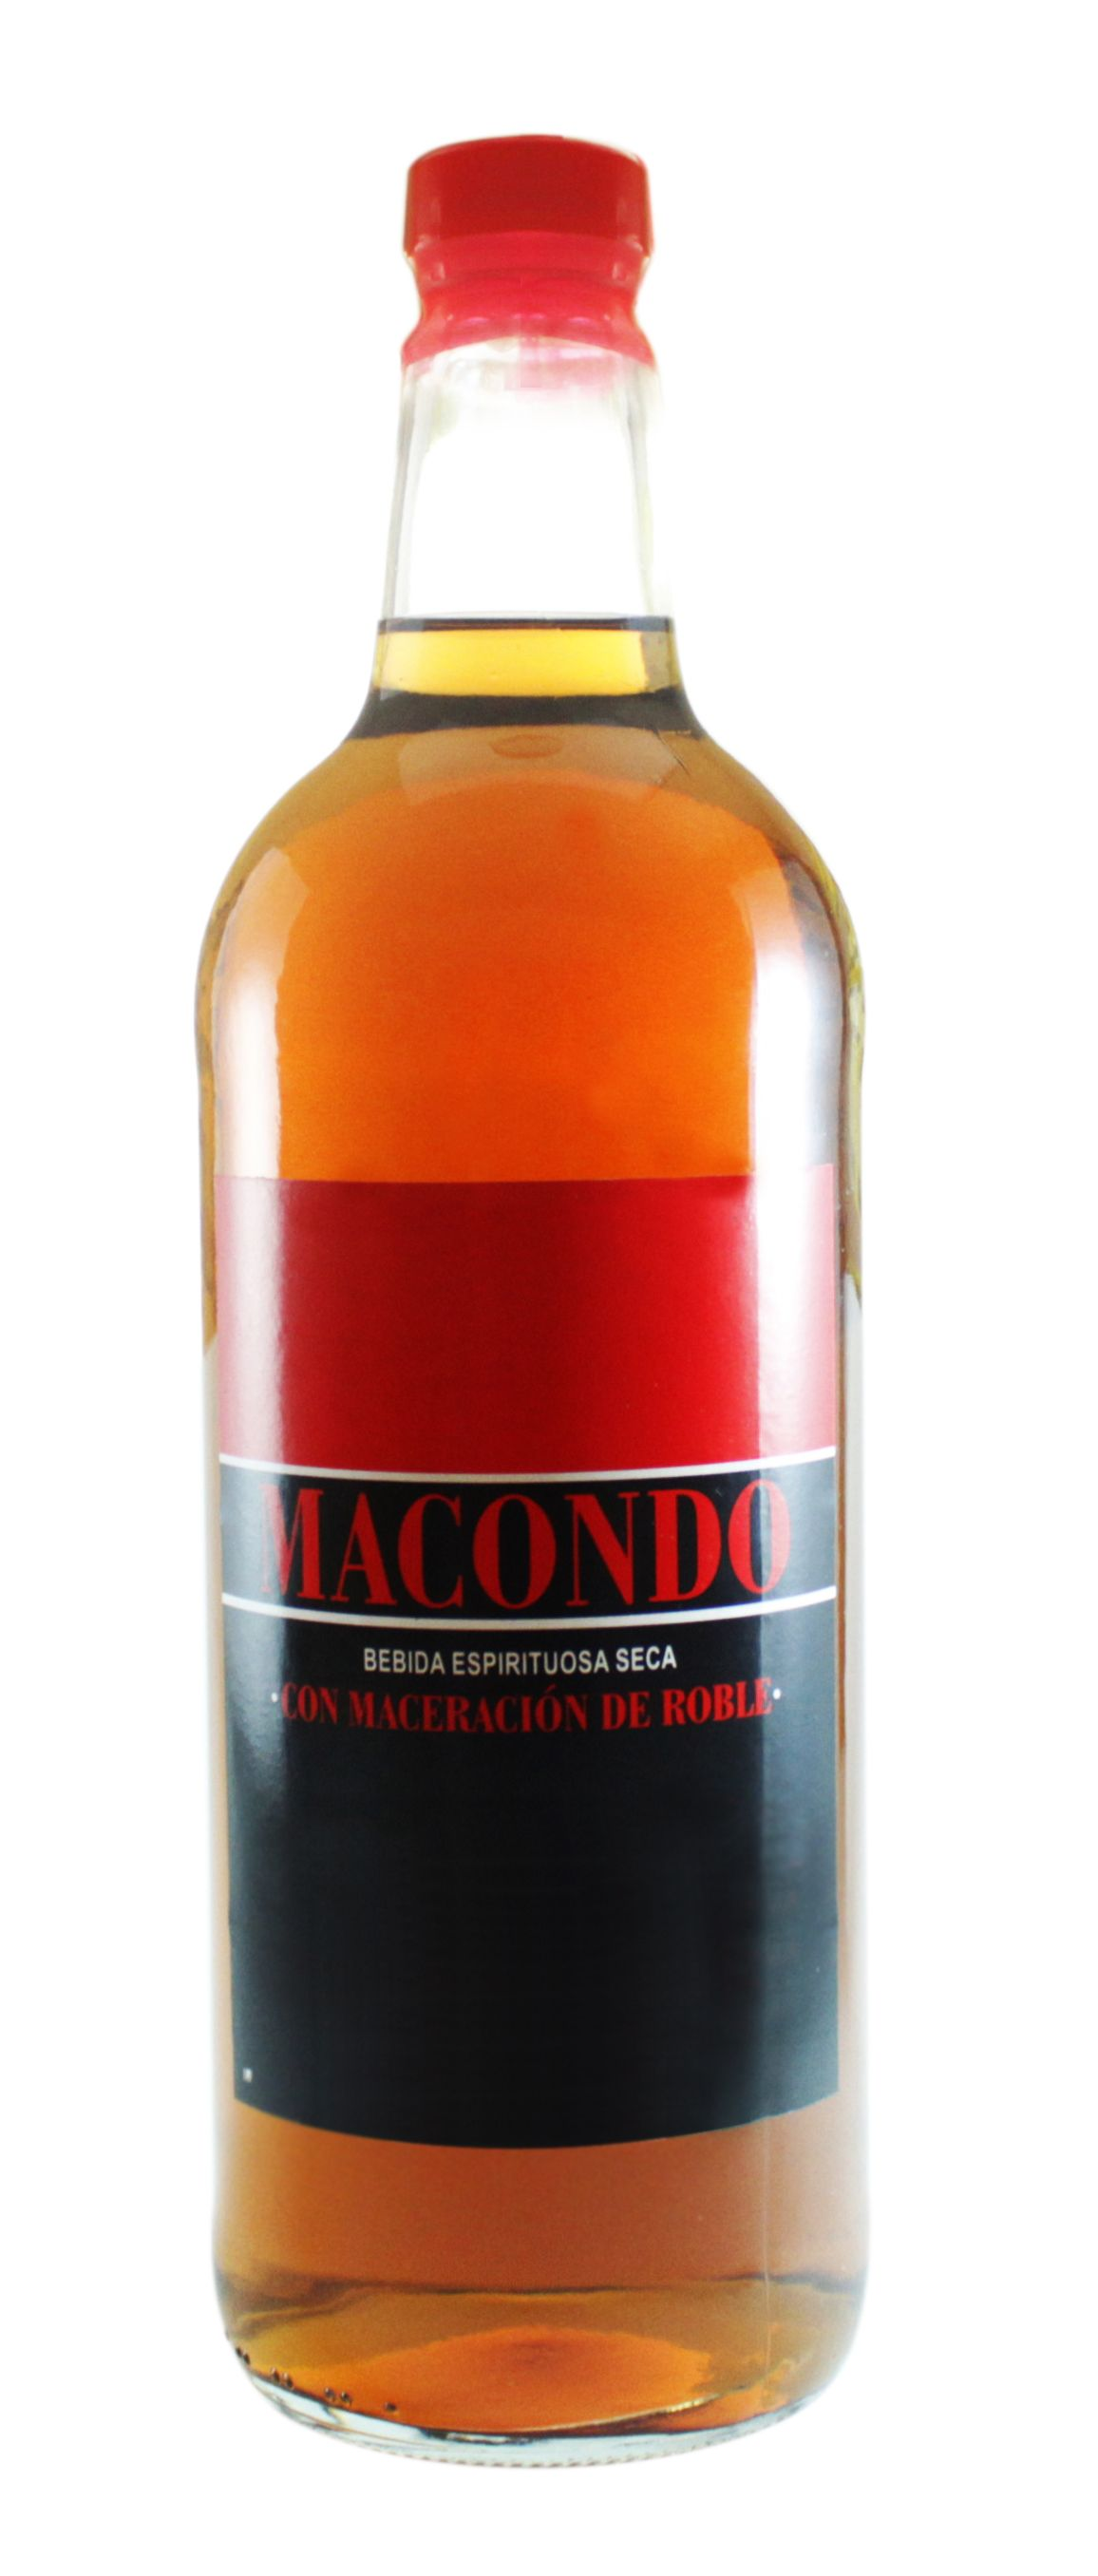 Macondo Solo Wine Bottle Rose Wine Bottle Whiskey Bottle